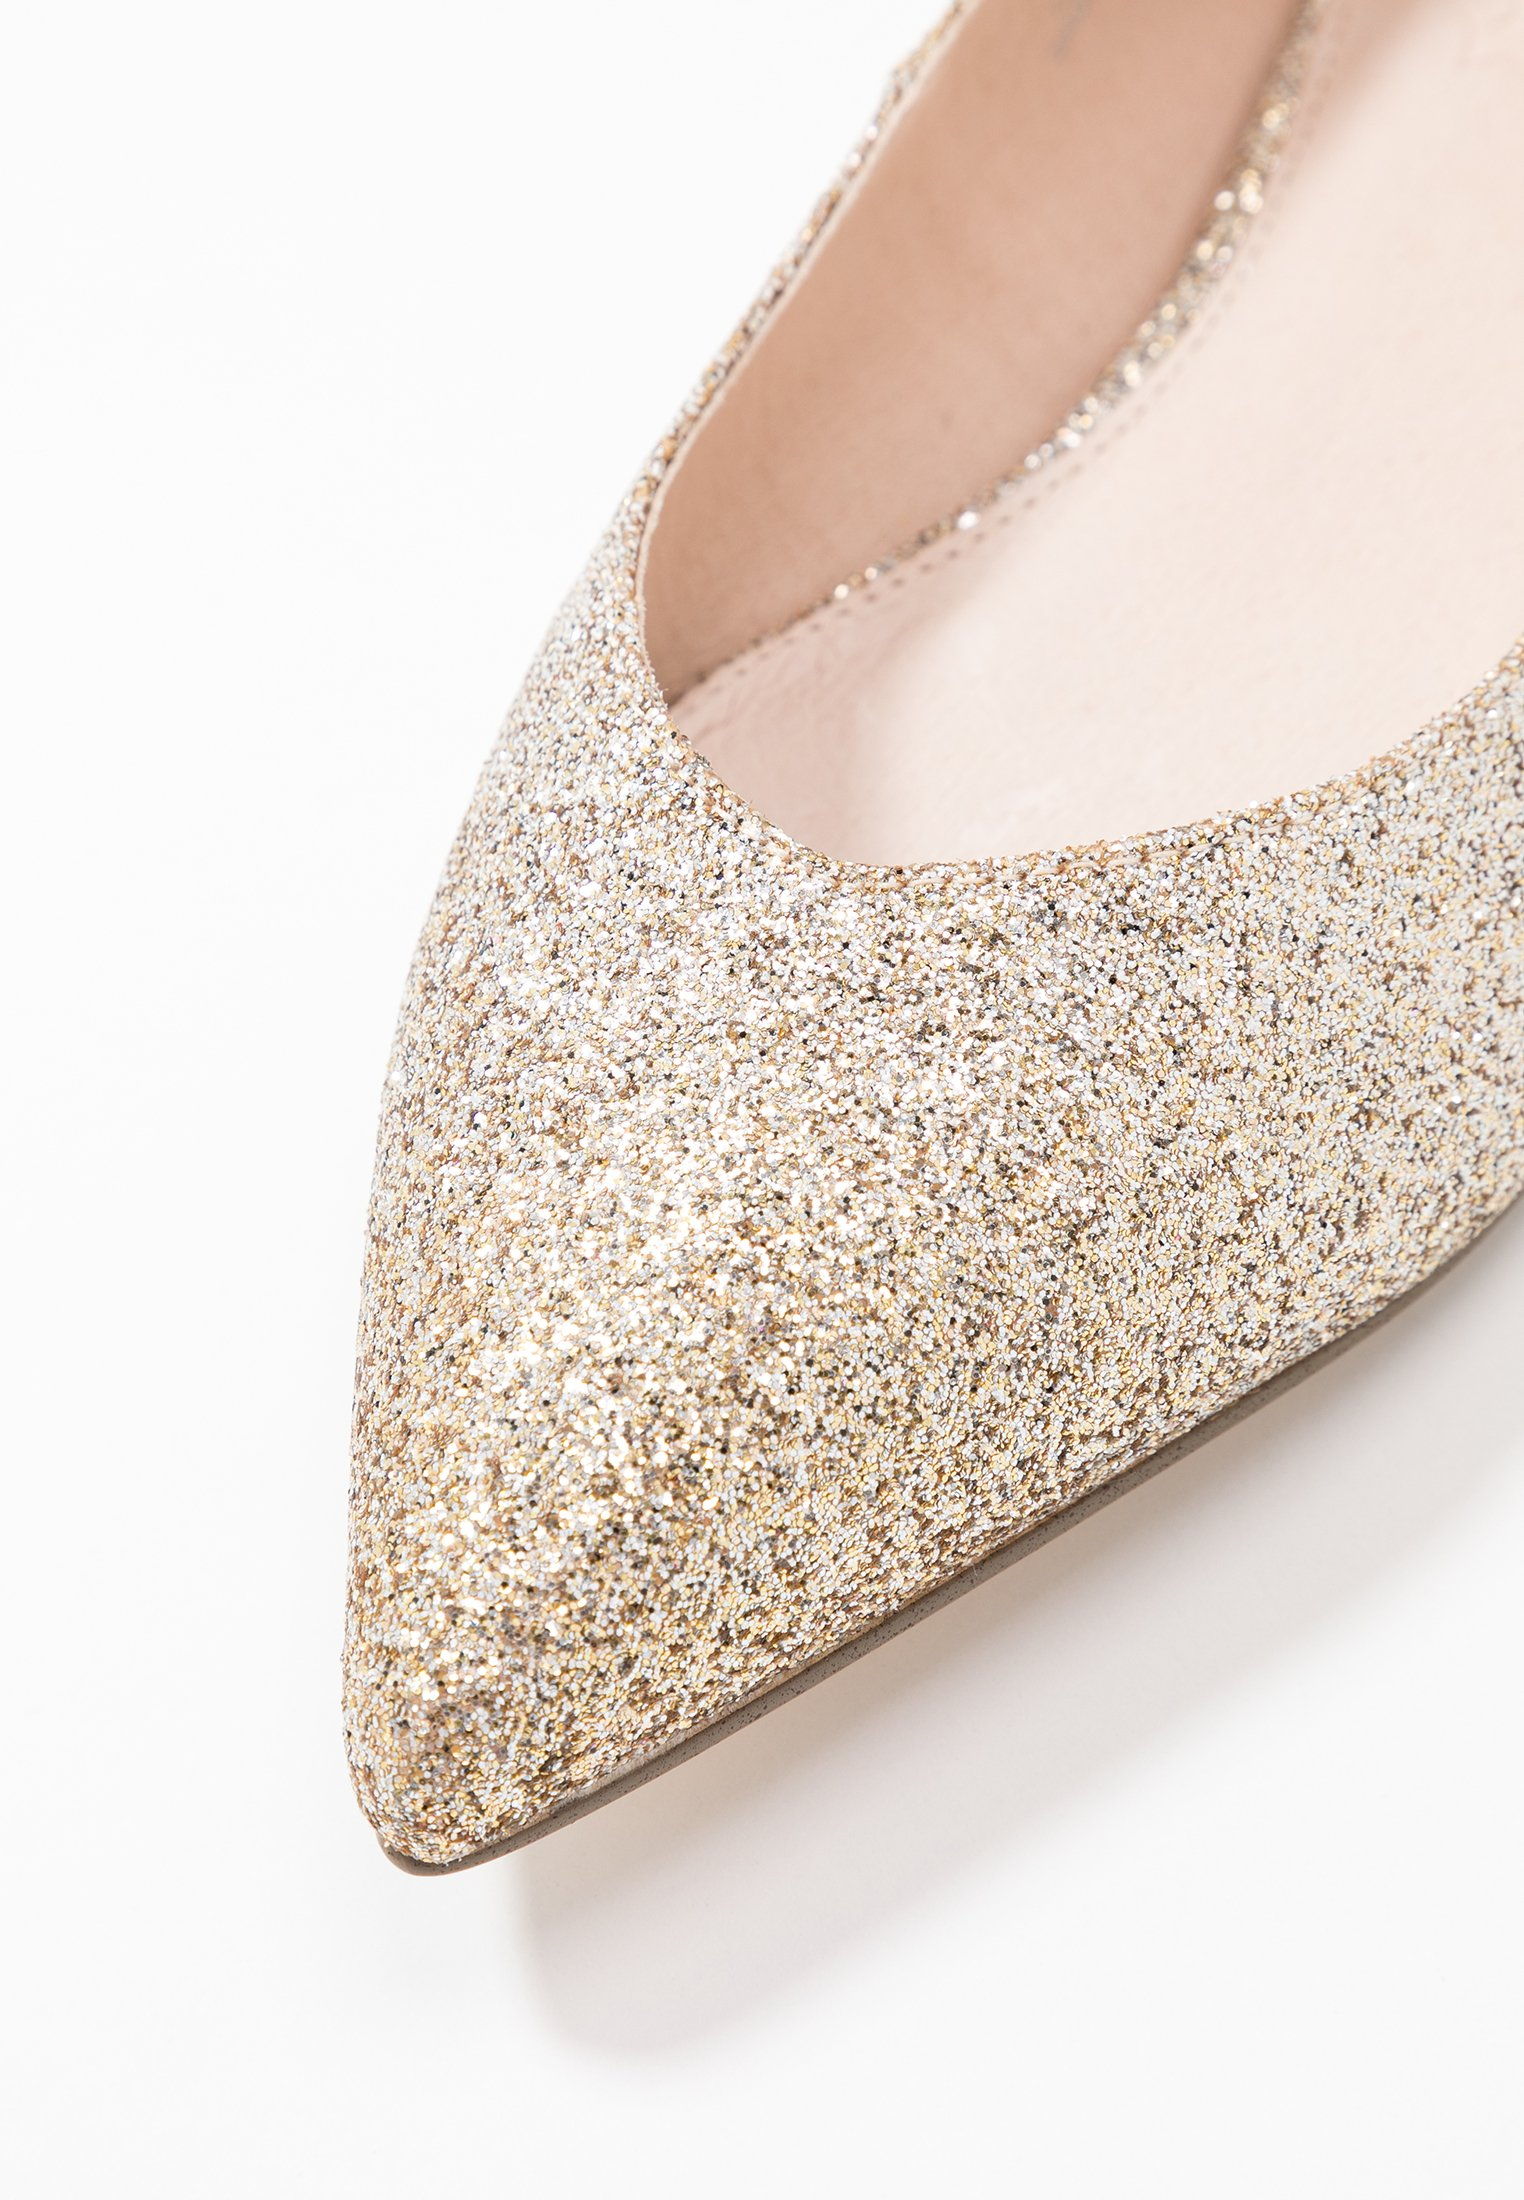 Buffalo AMIREH - Ballerine light gold